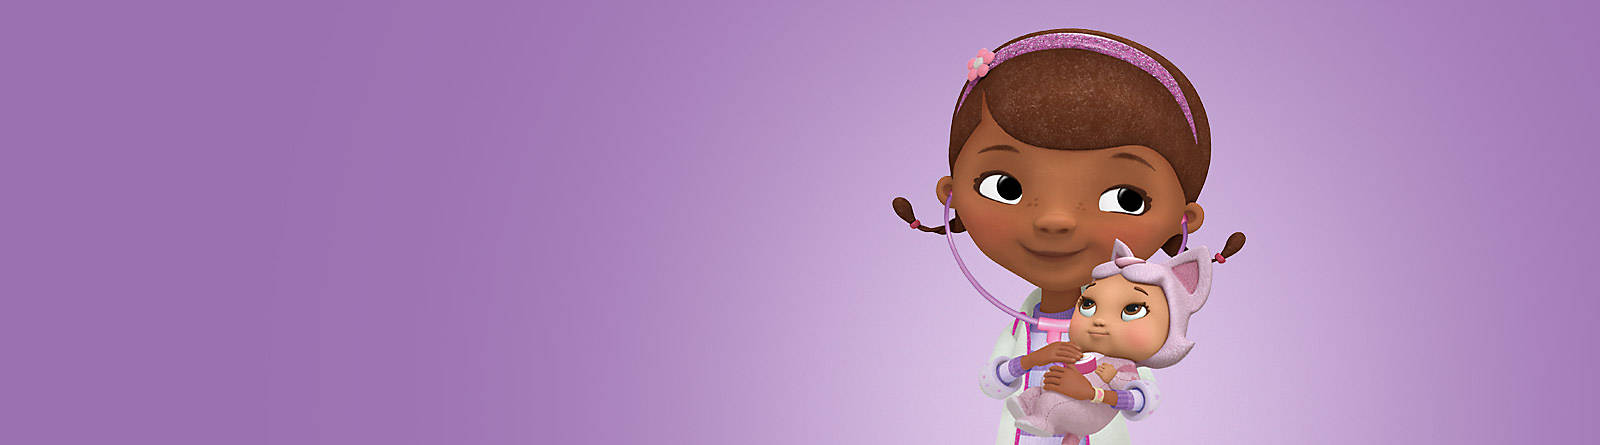 Doc McStuffin Discover our range of Doc McStuffins merchandise, including toys, playsets and costumes